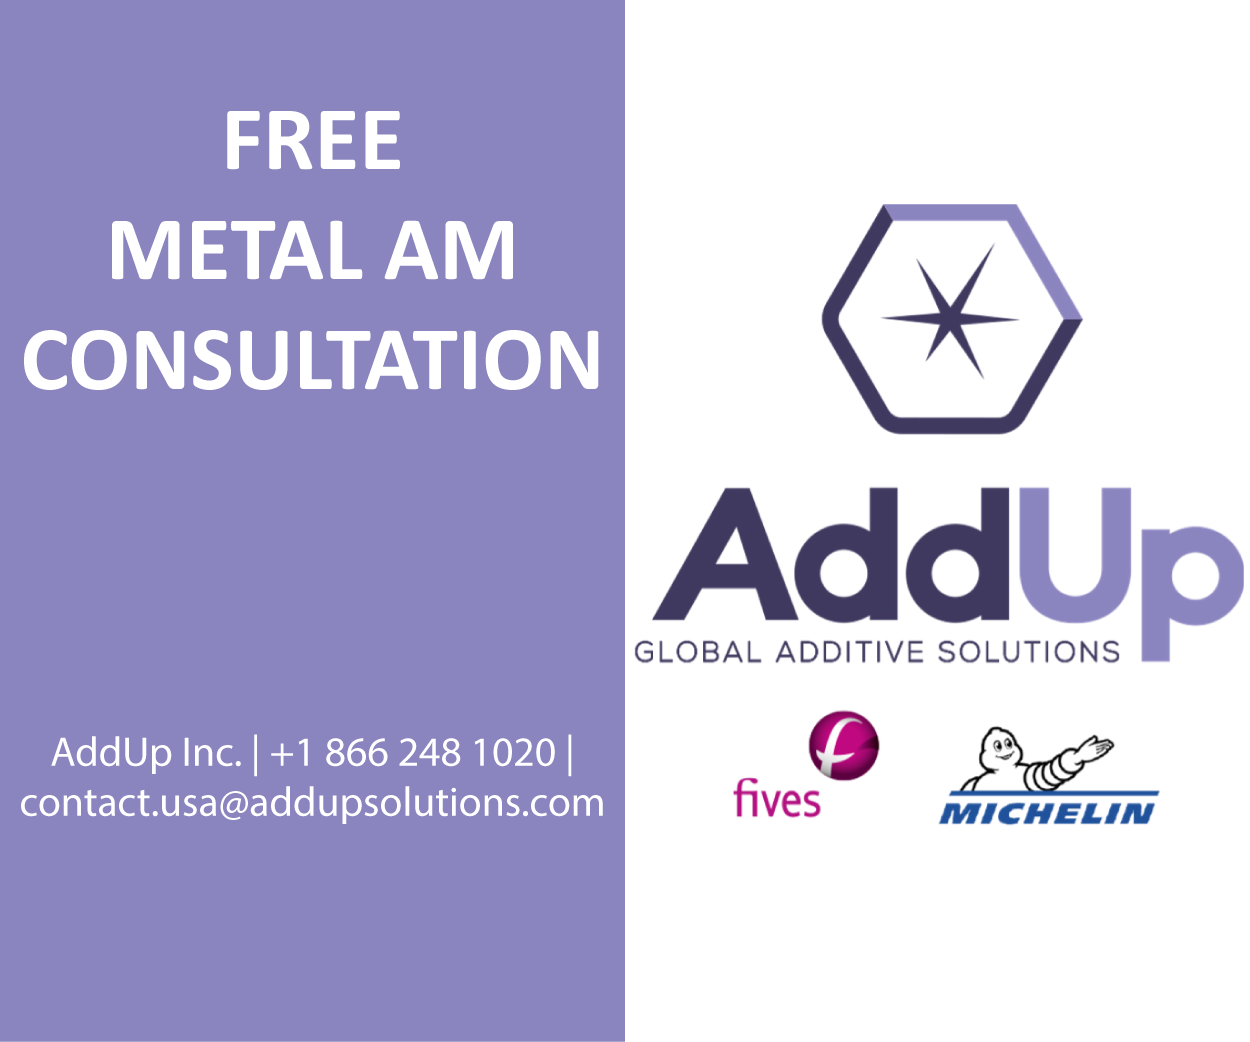 AddUp Metal AM consultation